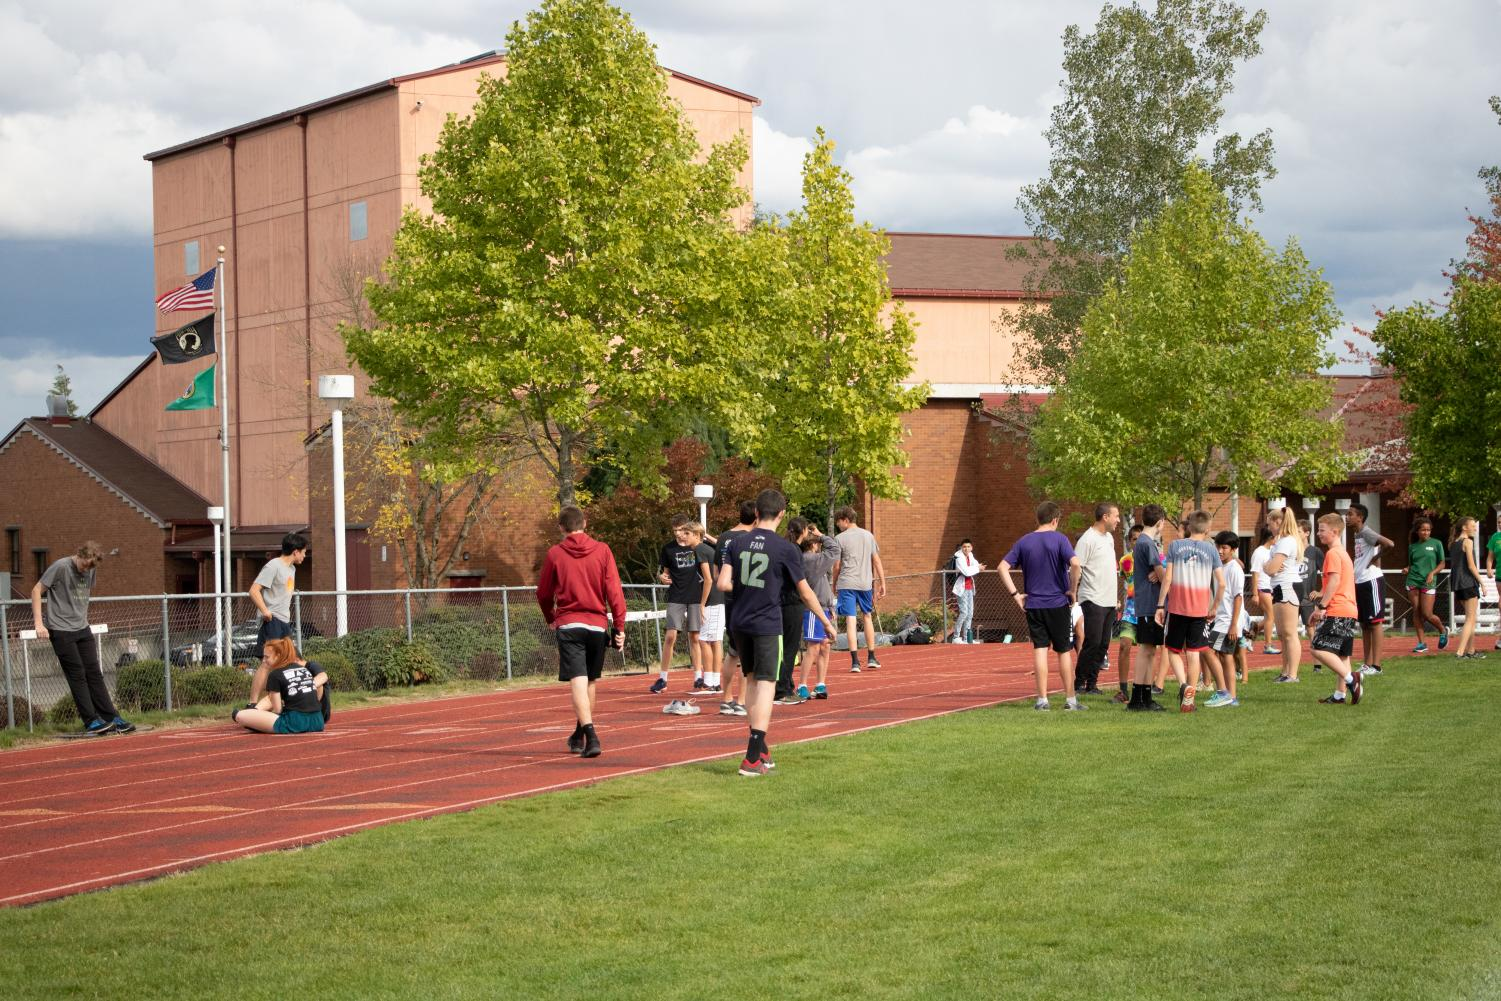 The cross country team takes a rest from their run during practice on the MTHS track. The team's enrollment has skyrocketed this school year, as 66 students are now participating as full members of the team for the fall season.